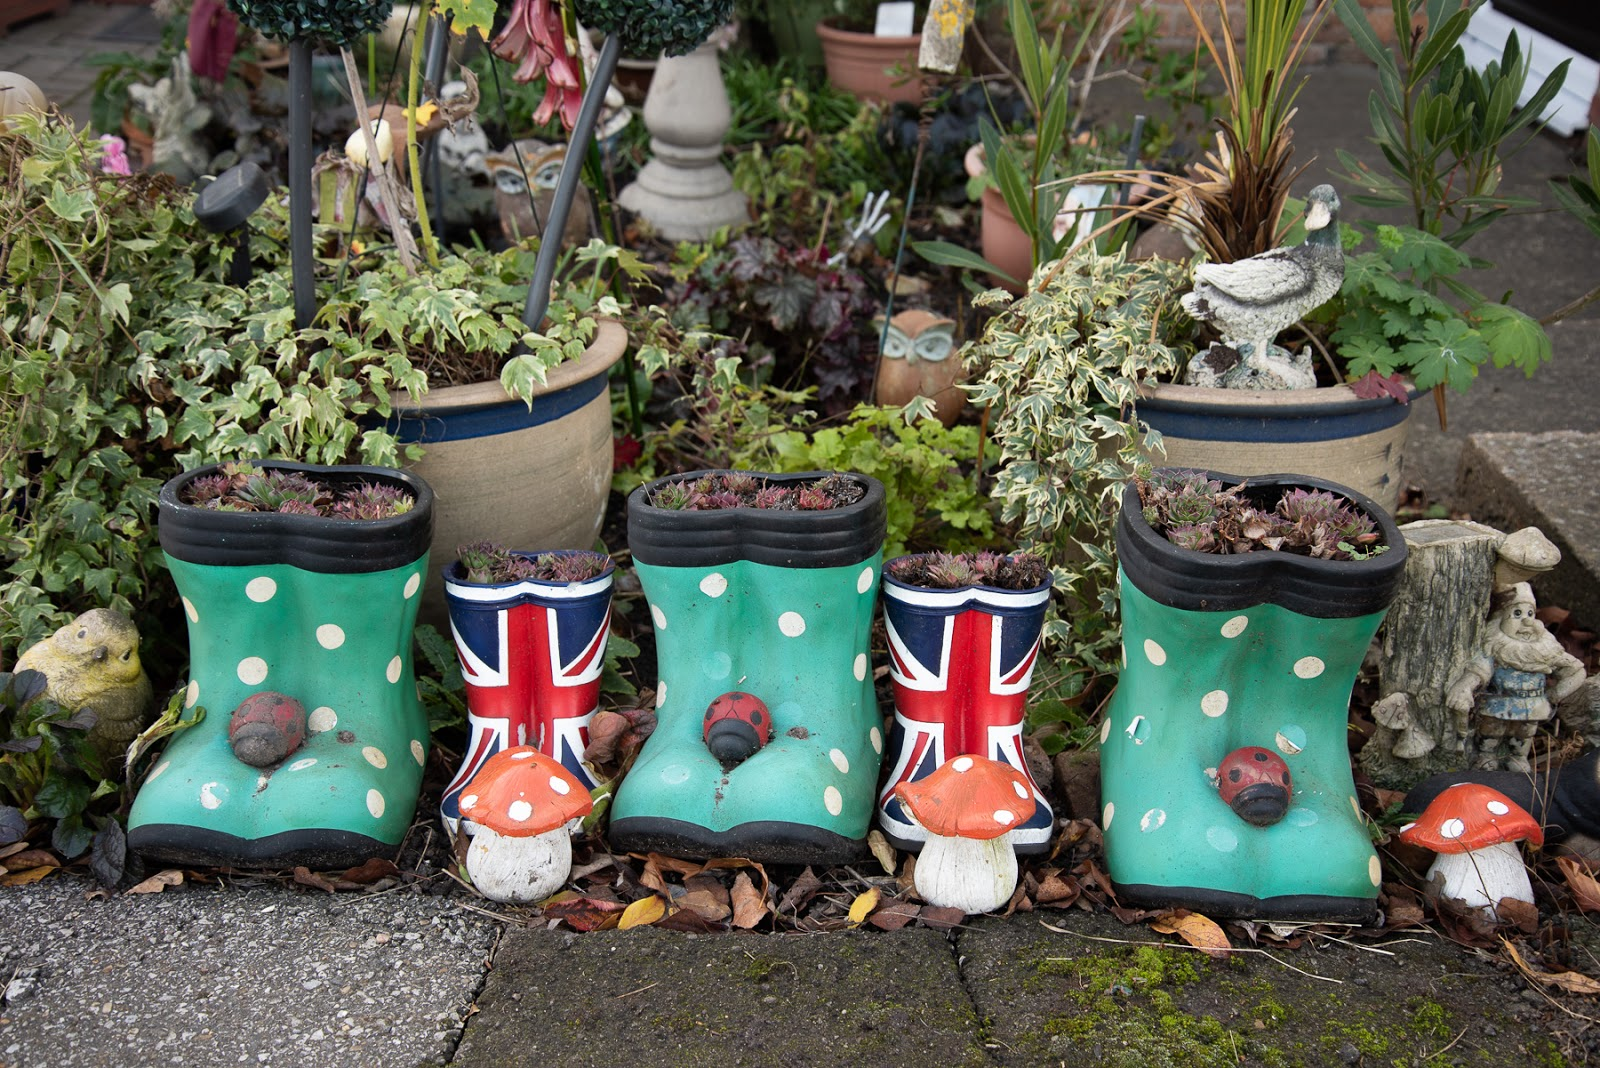 Wellies with Union Flag